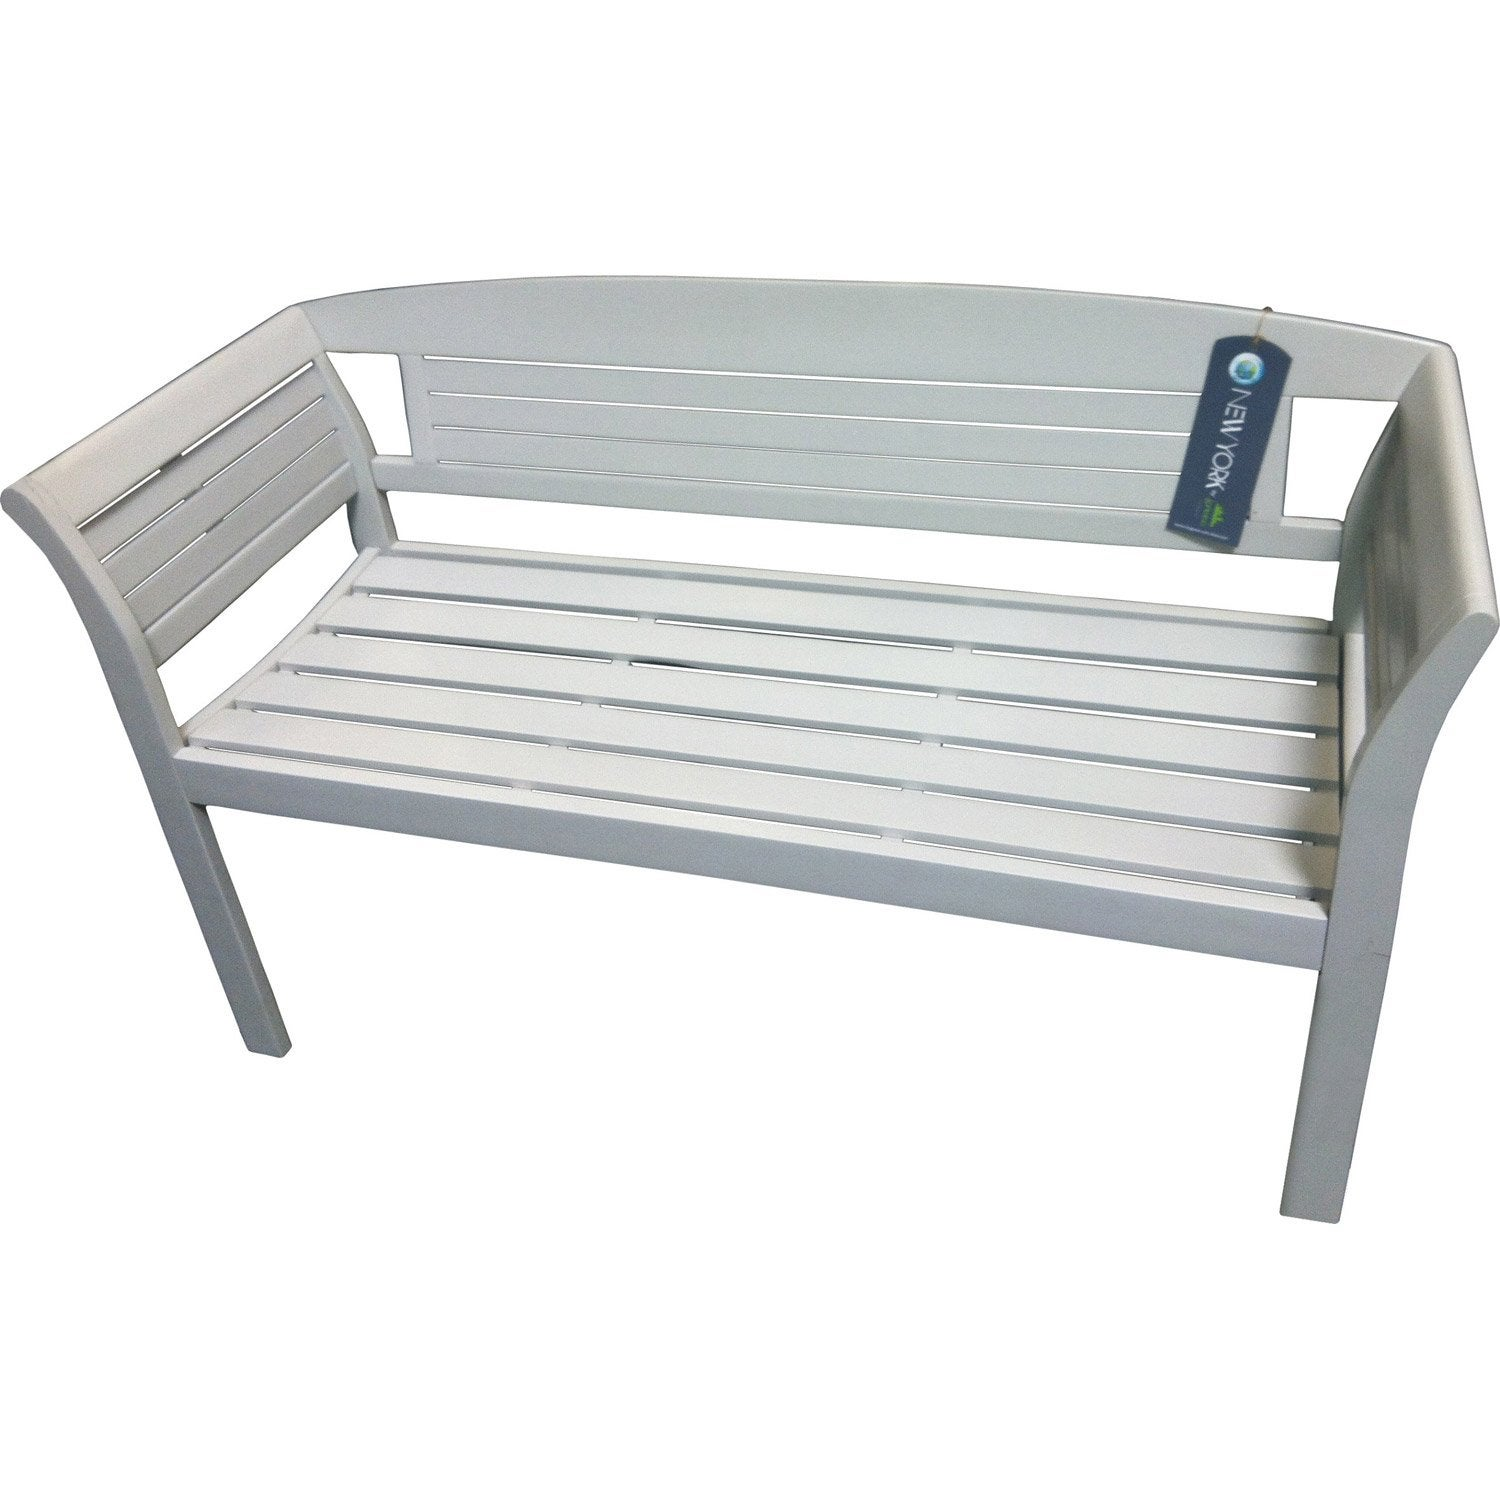 Banc 2 places de jardin en bois New-york muscade | Leroy Merlin